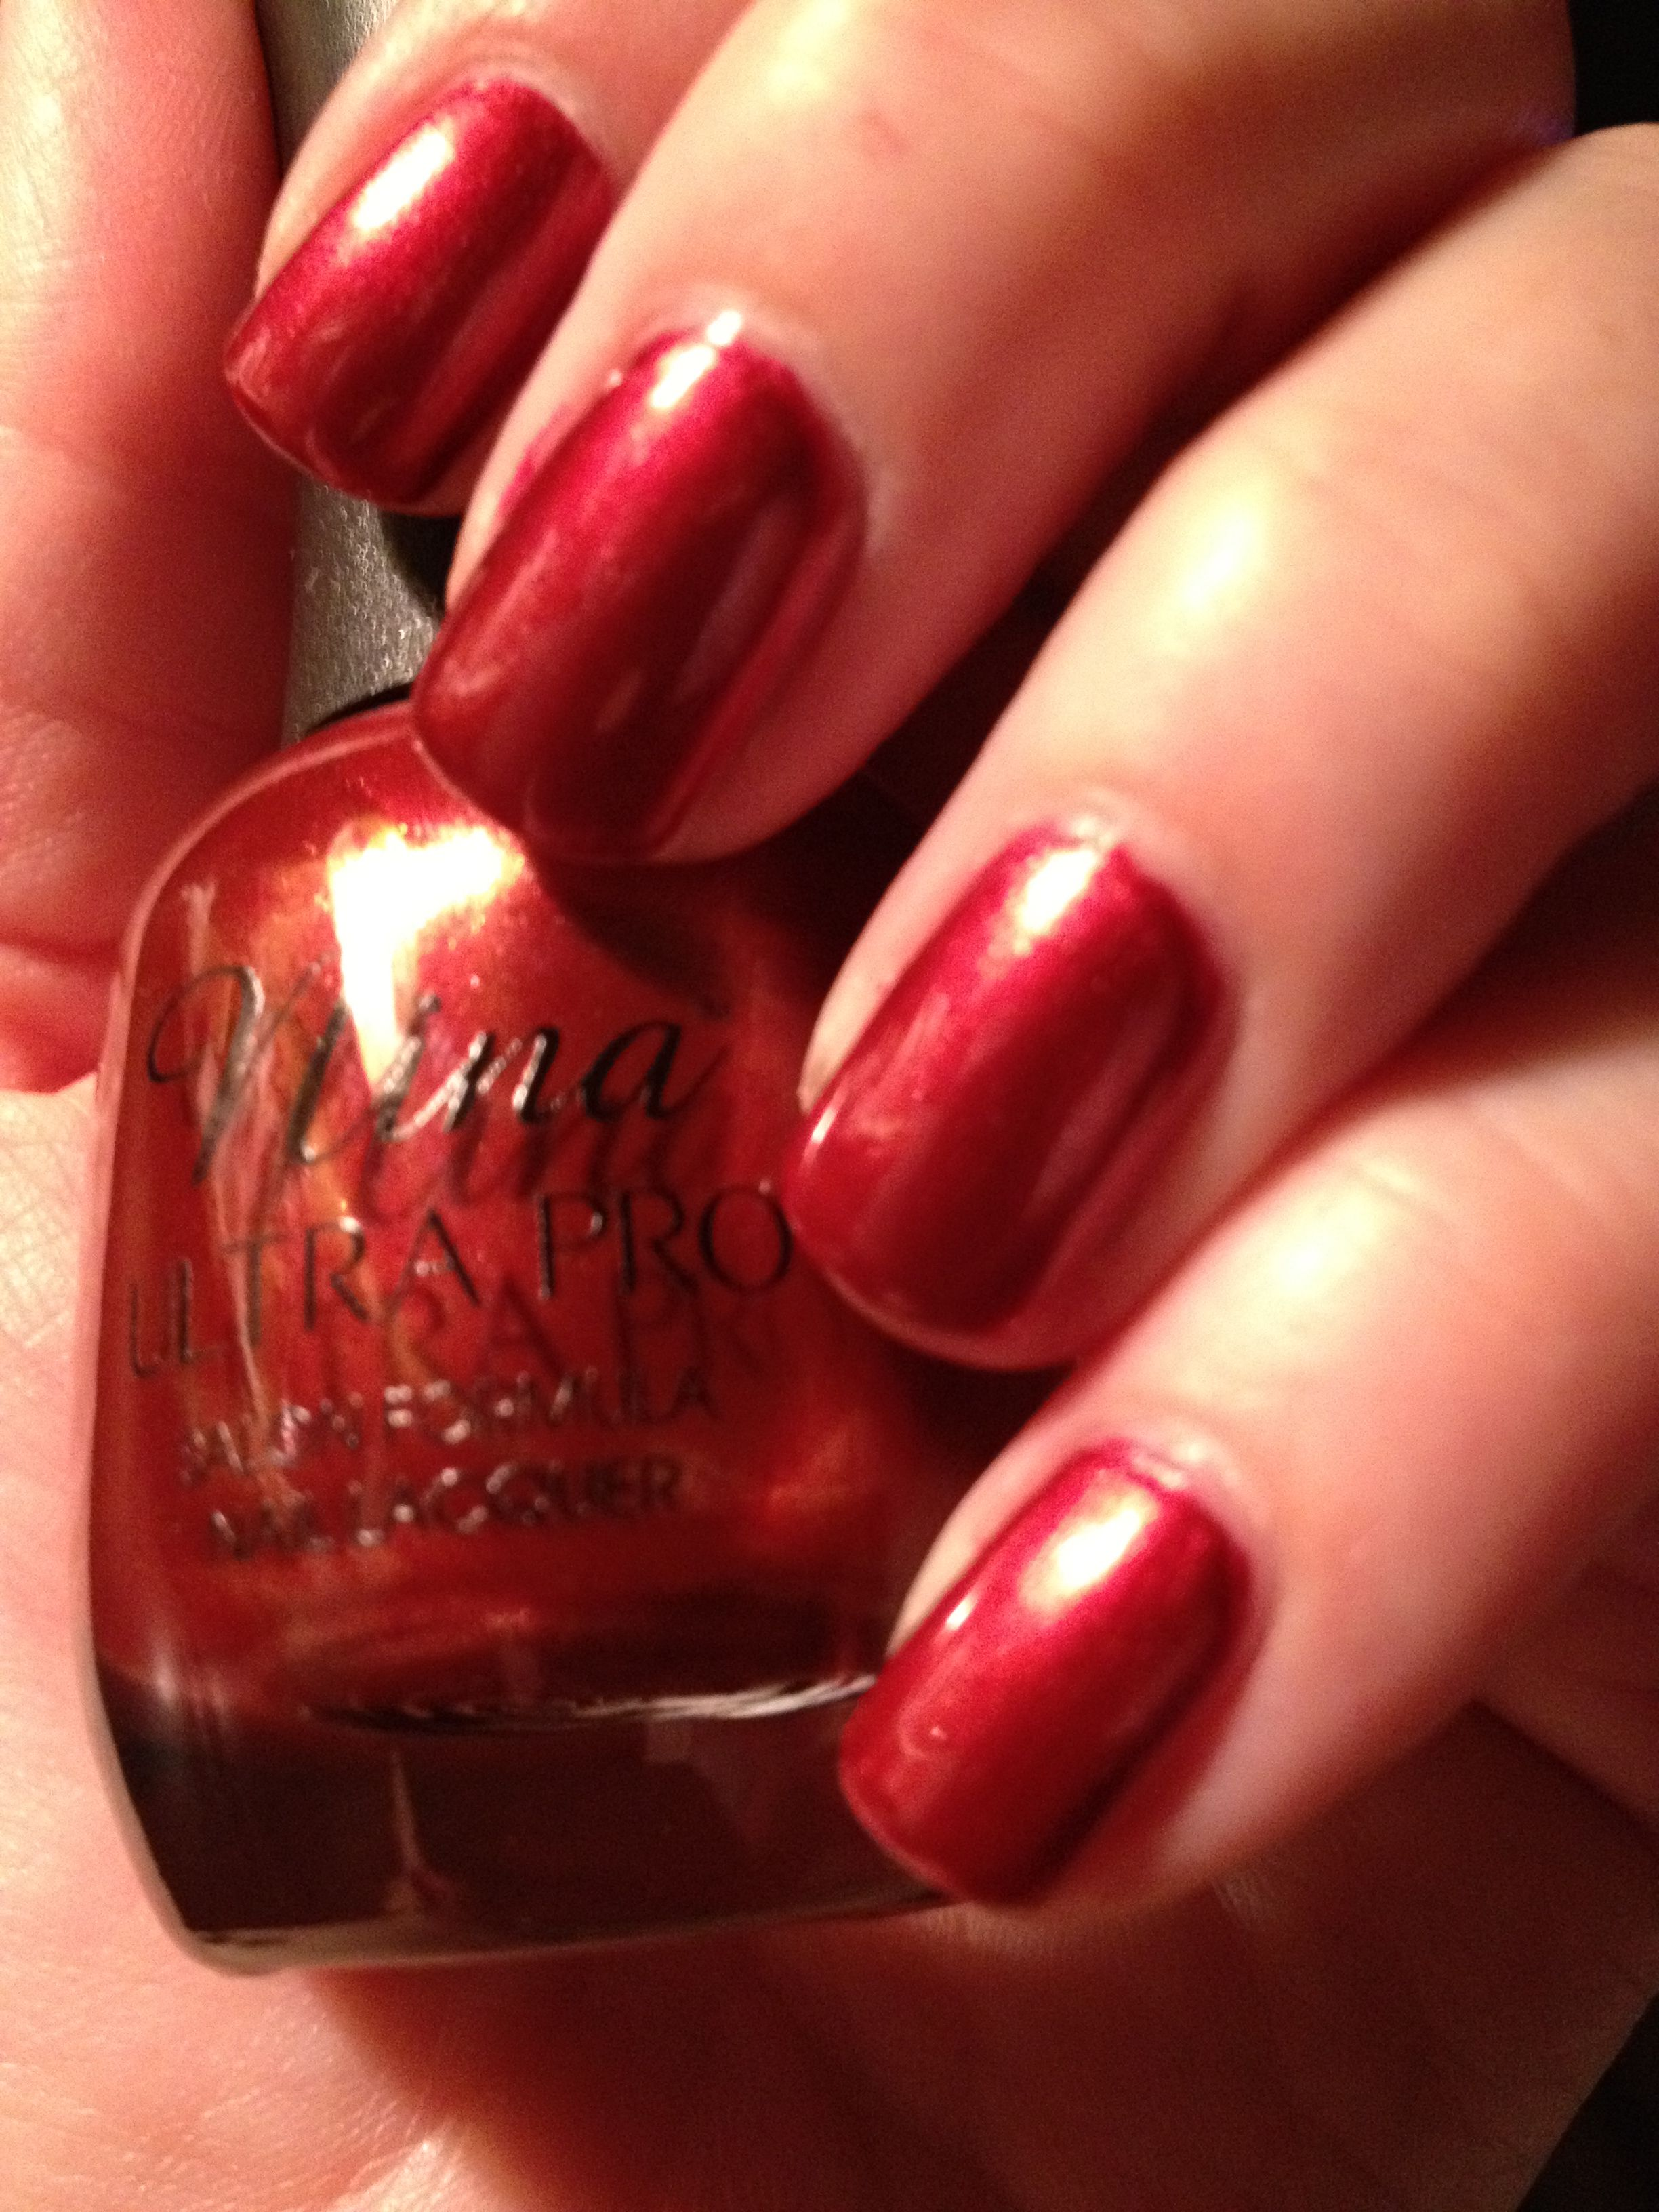 Nina Ultra Pro nail polish - Candi Apple | Nail Swatches | Pinterest ...